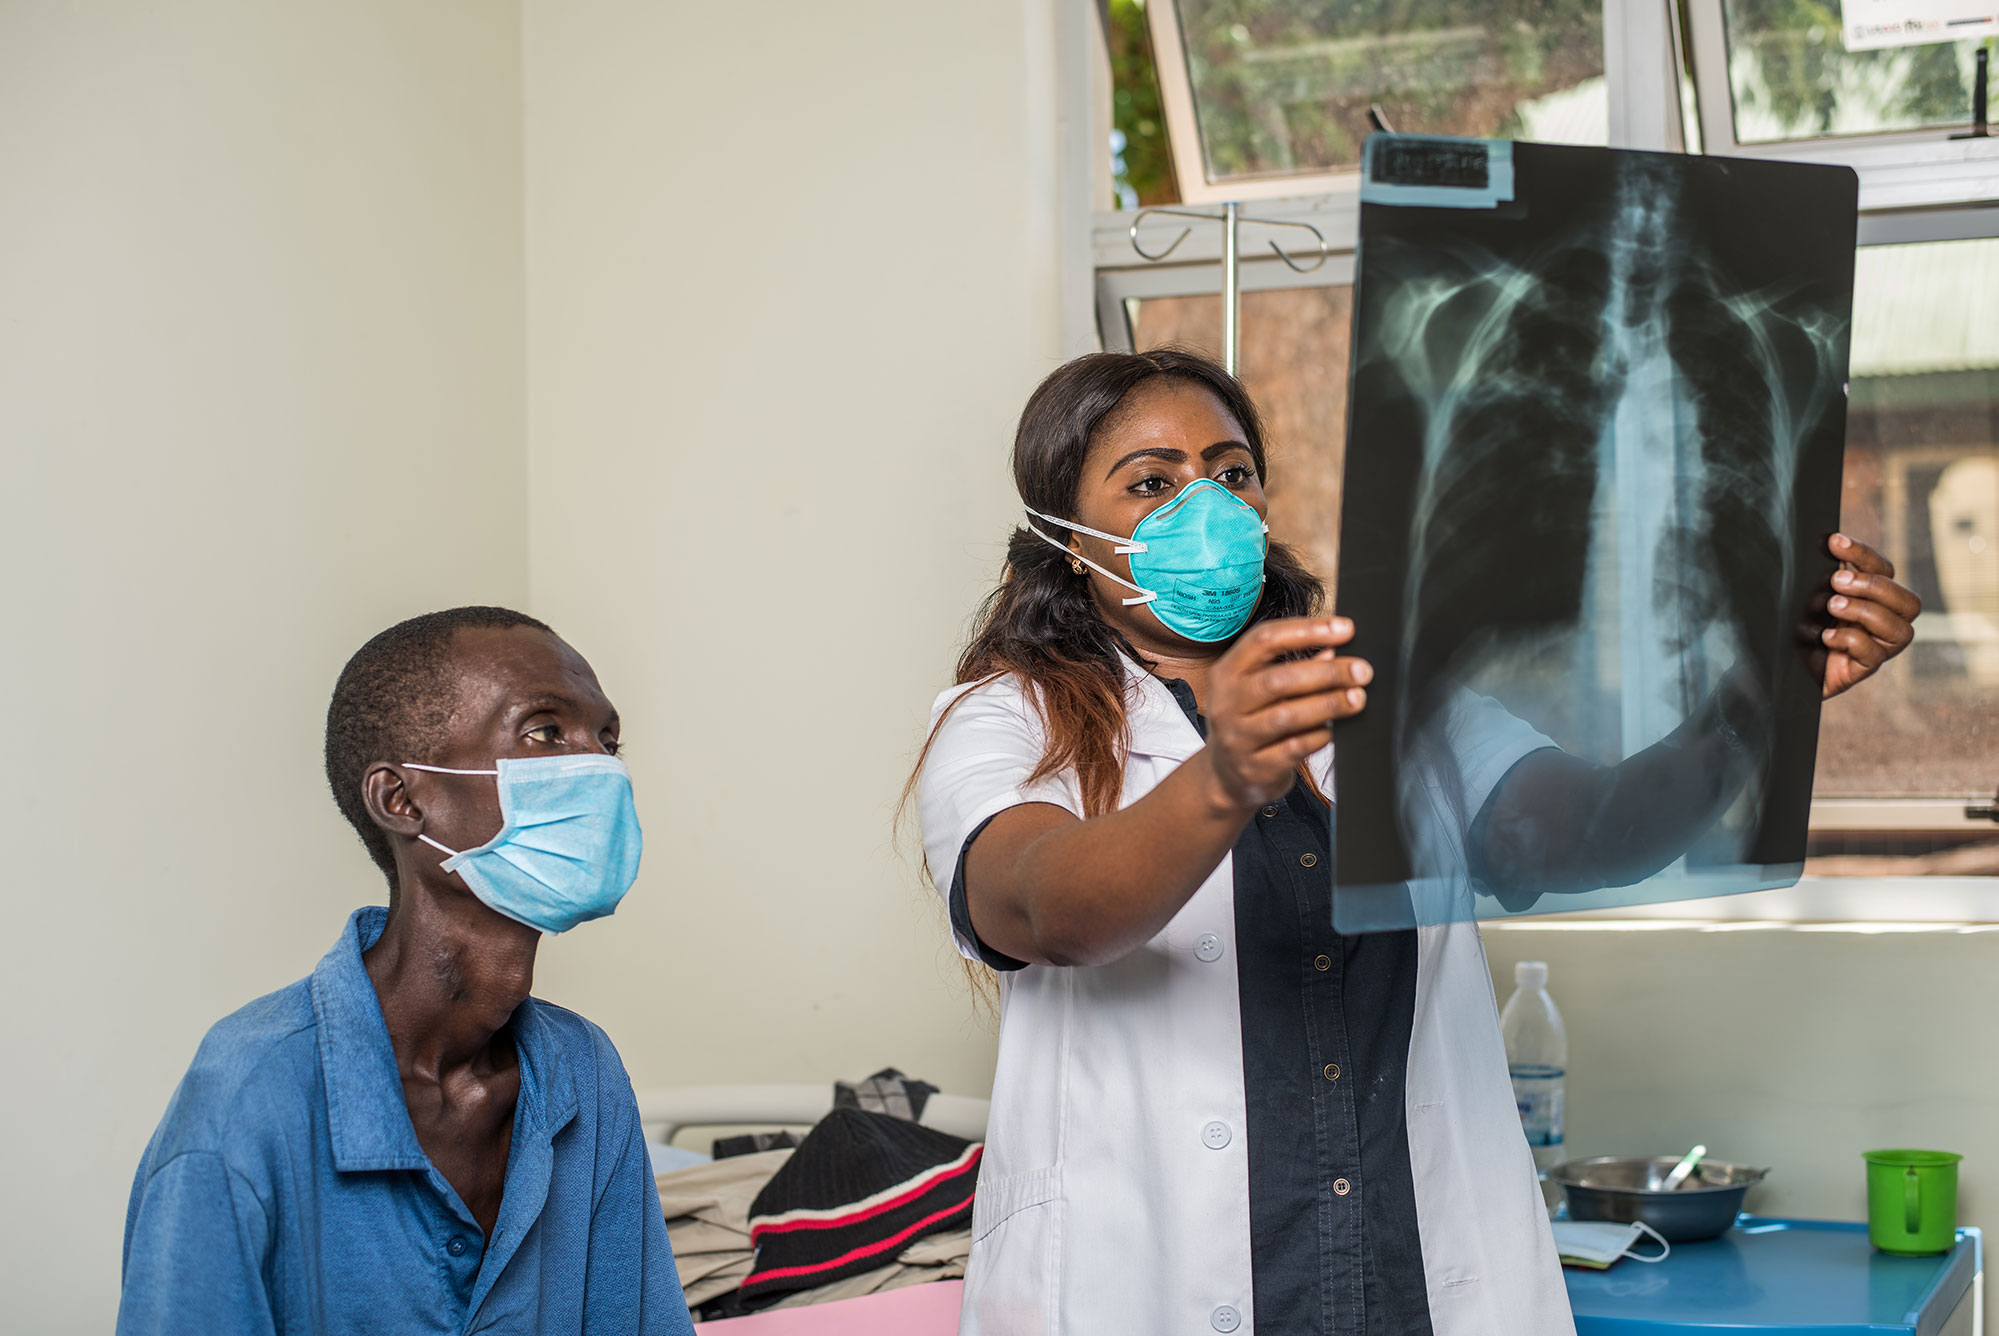 Health worker in Zambia examines x-ray